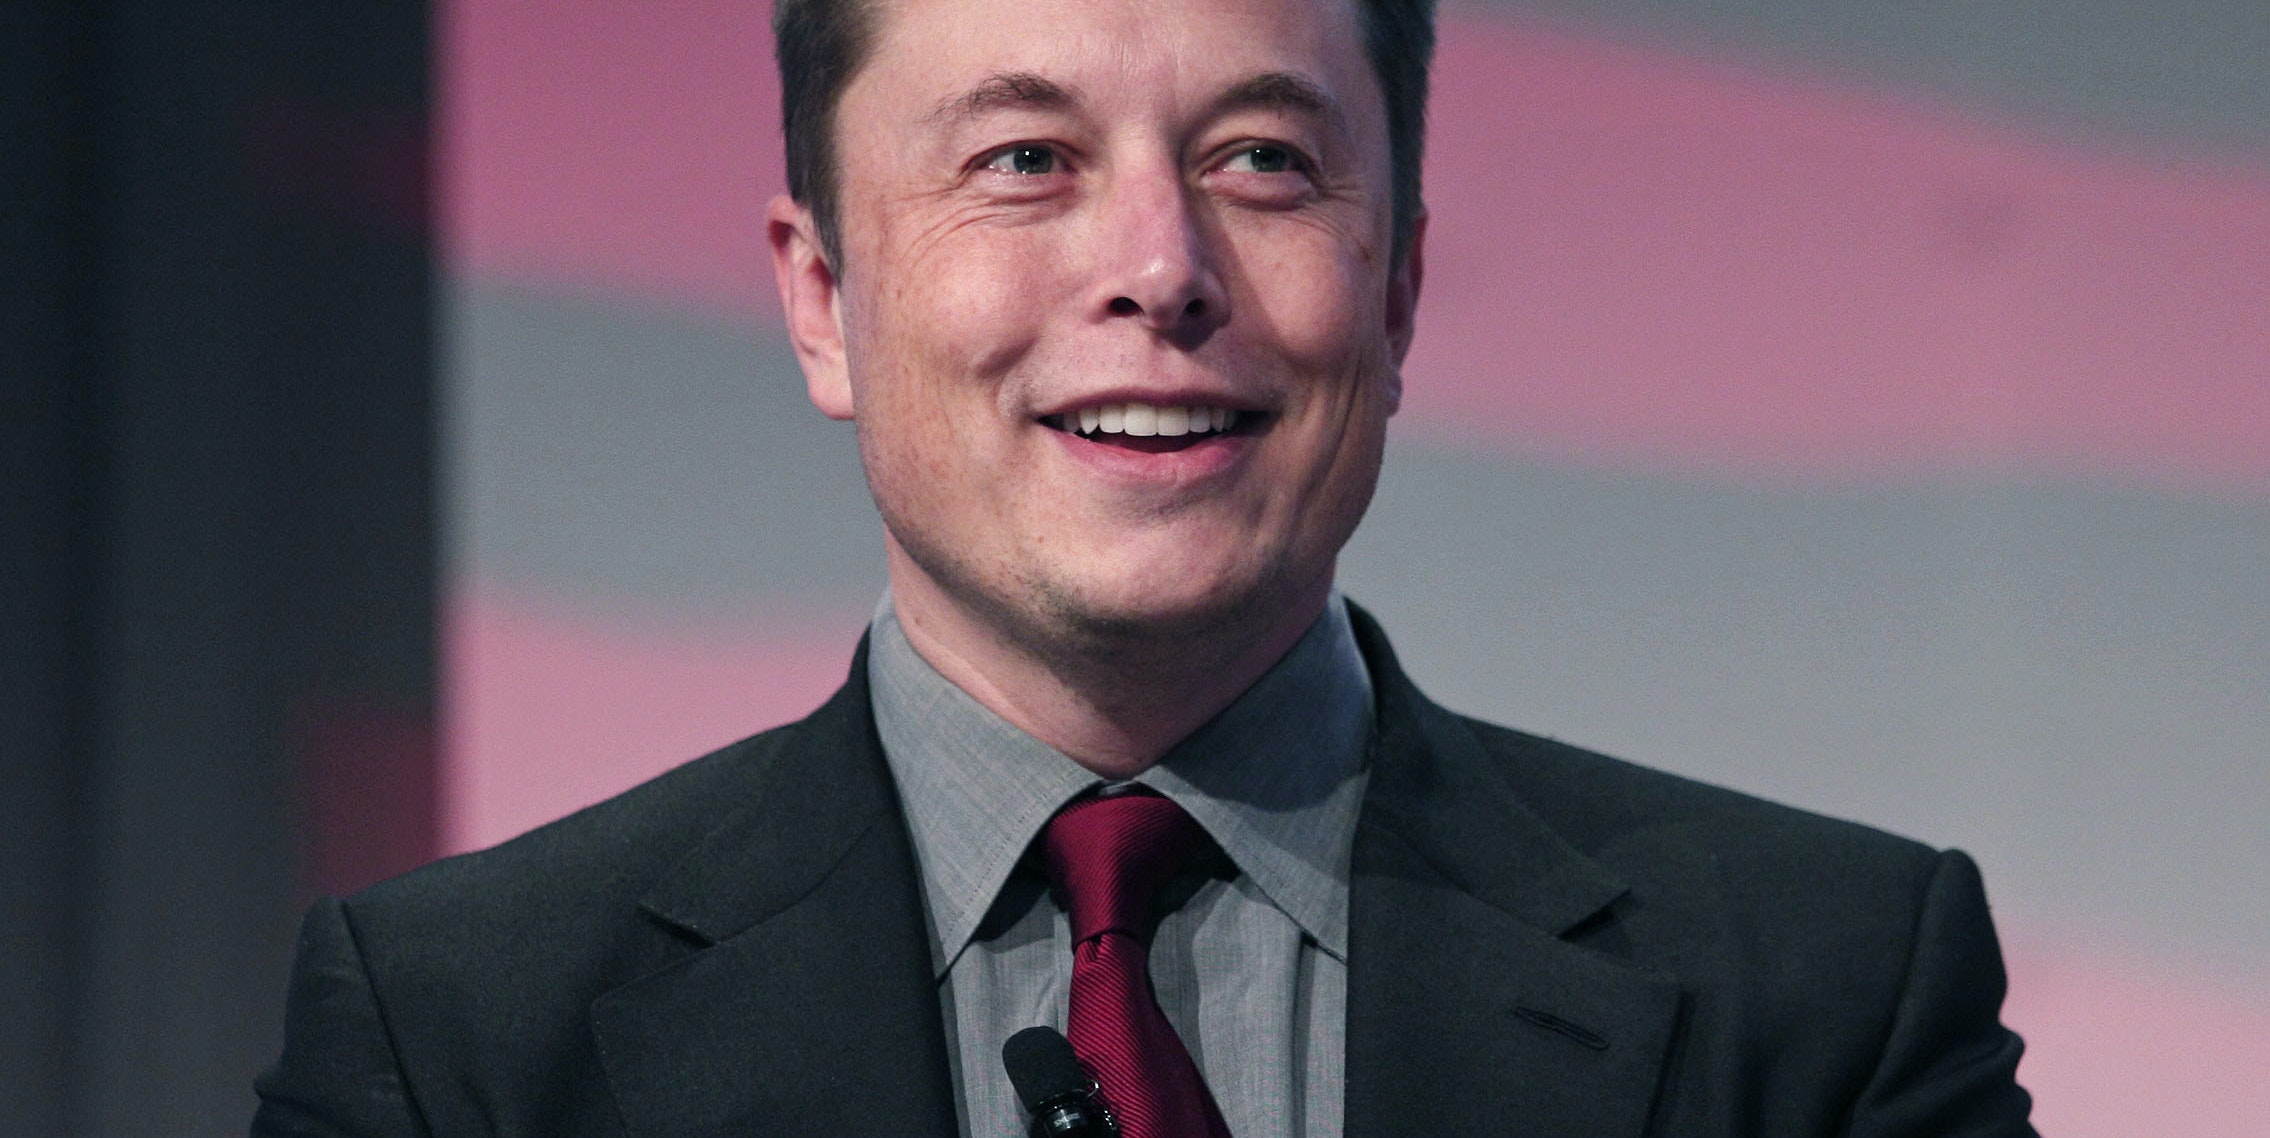 Elon Musk Will Begin Digging Tunnels in a Month